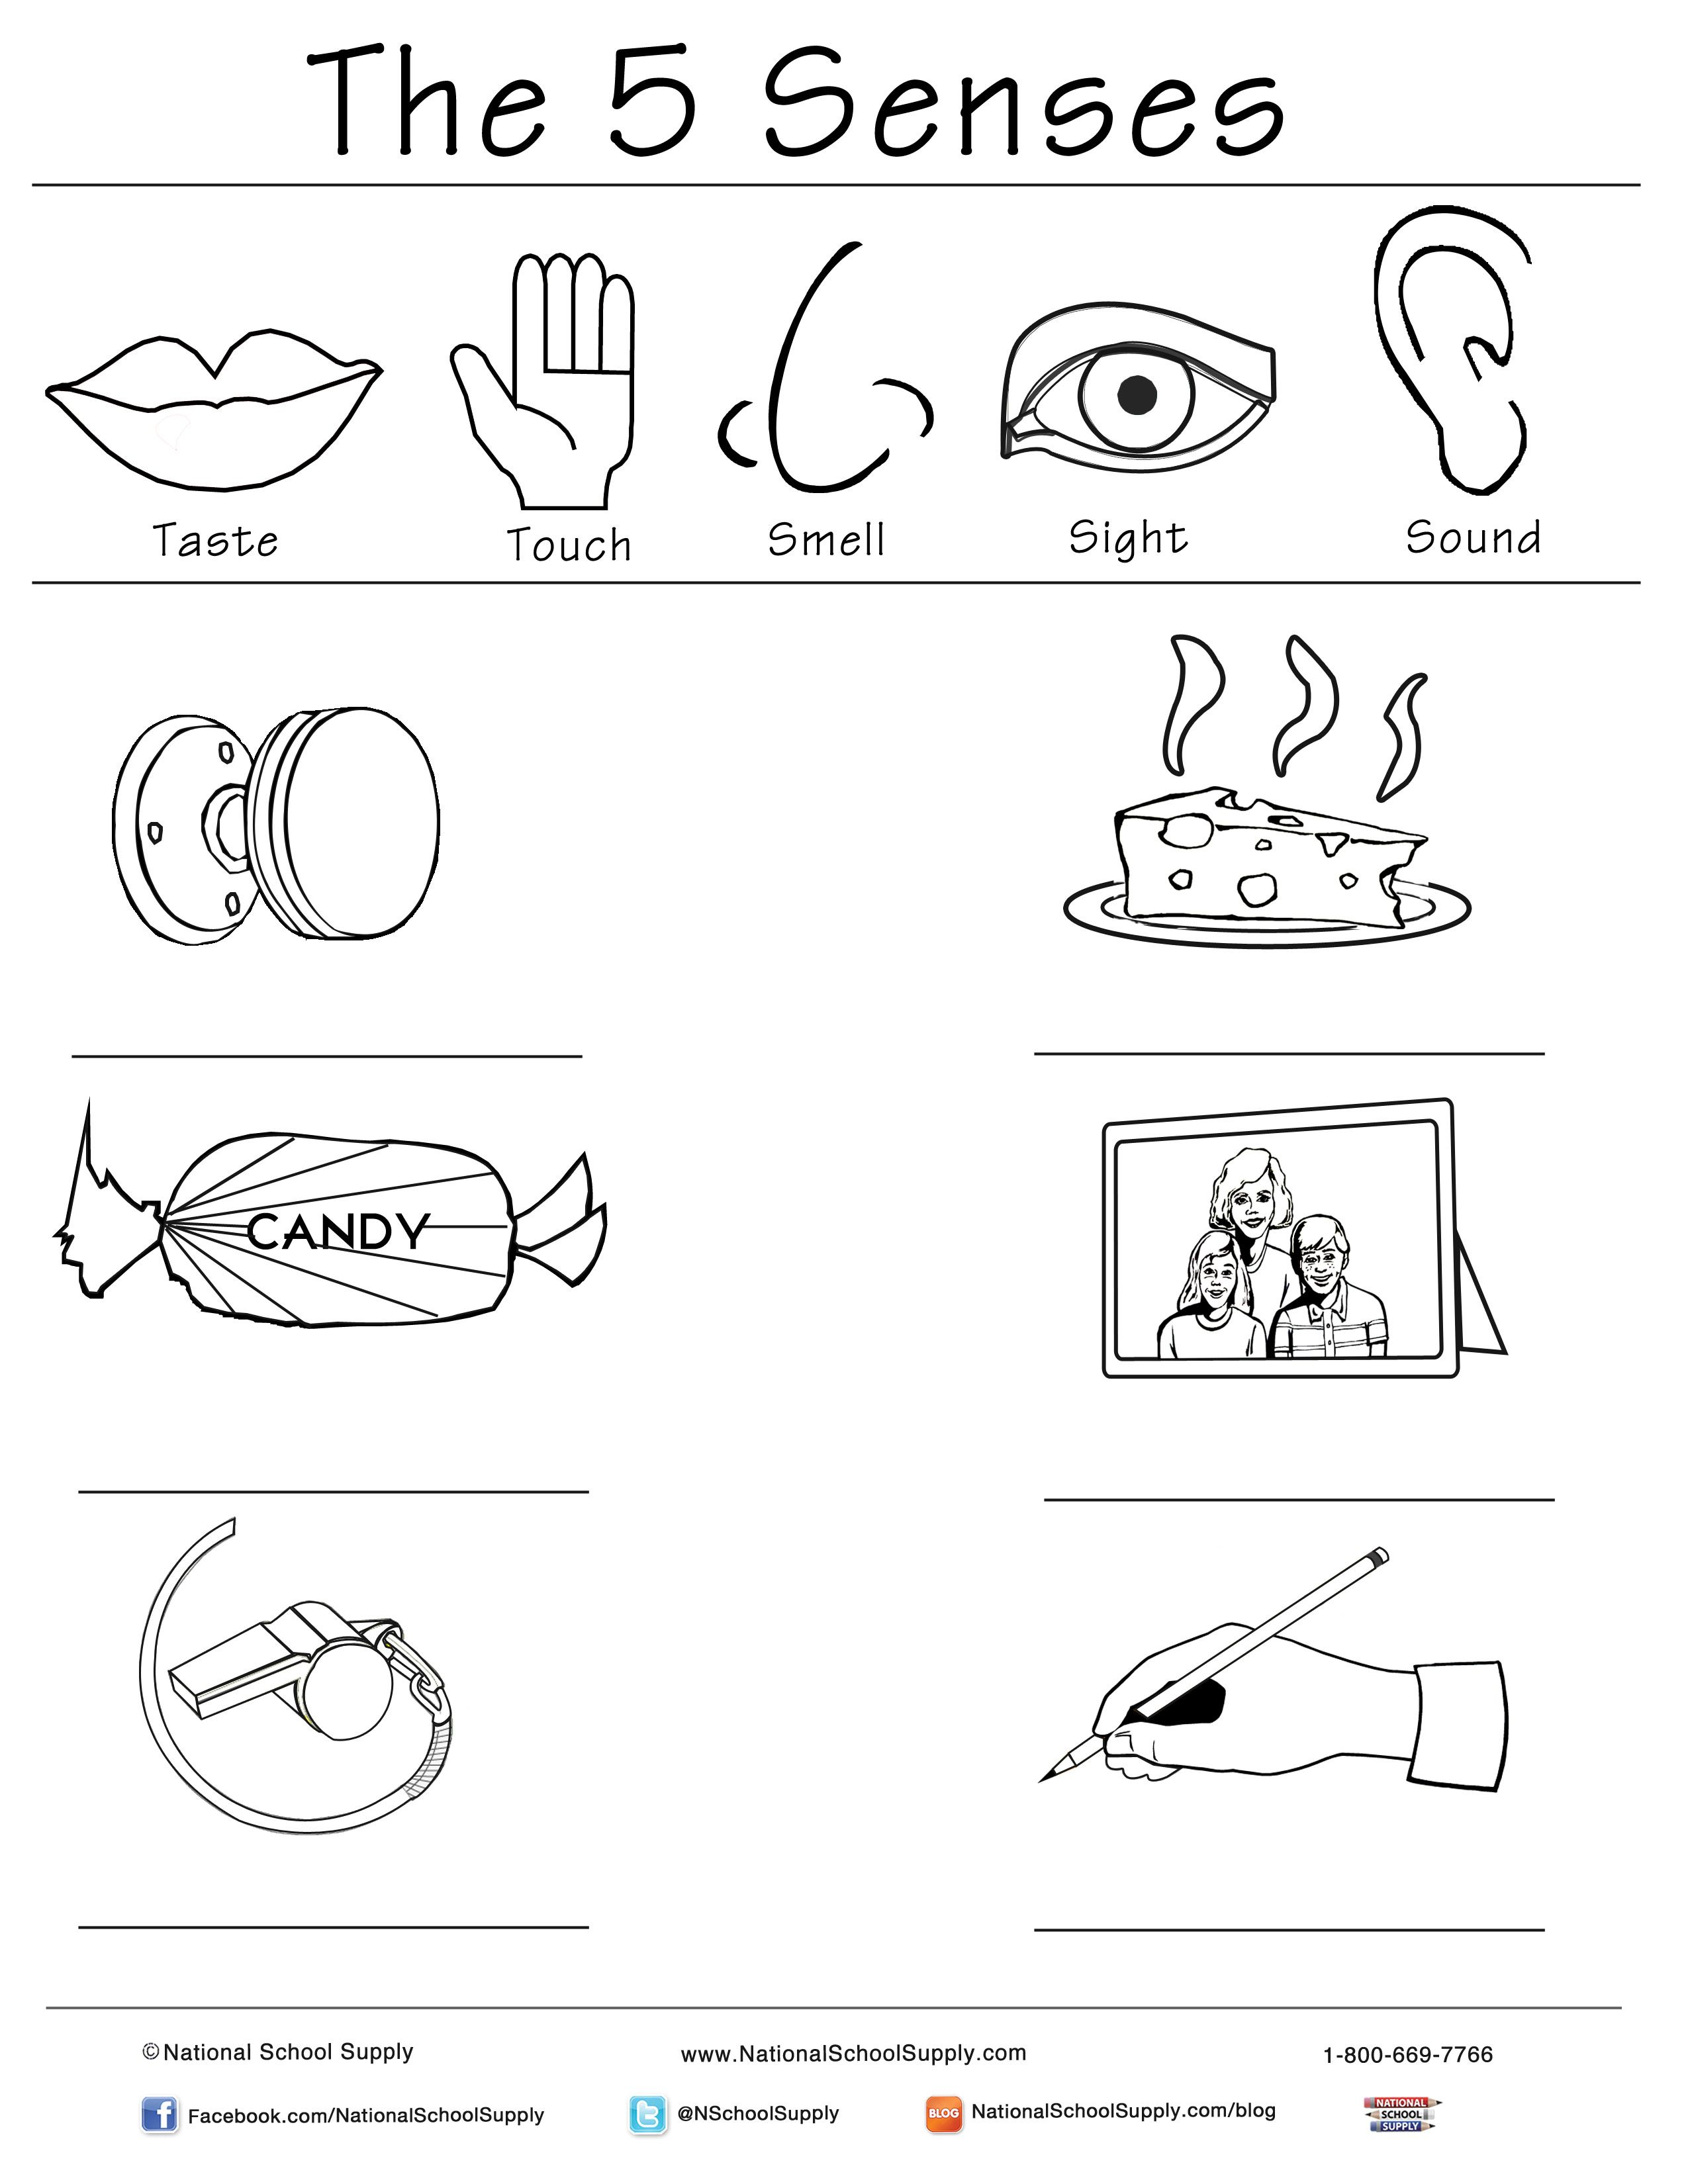 New 5 Senses Printable Is Great For Classrooms Of All